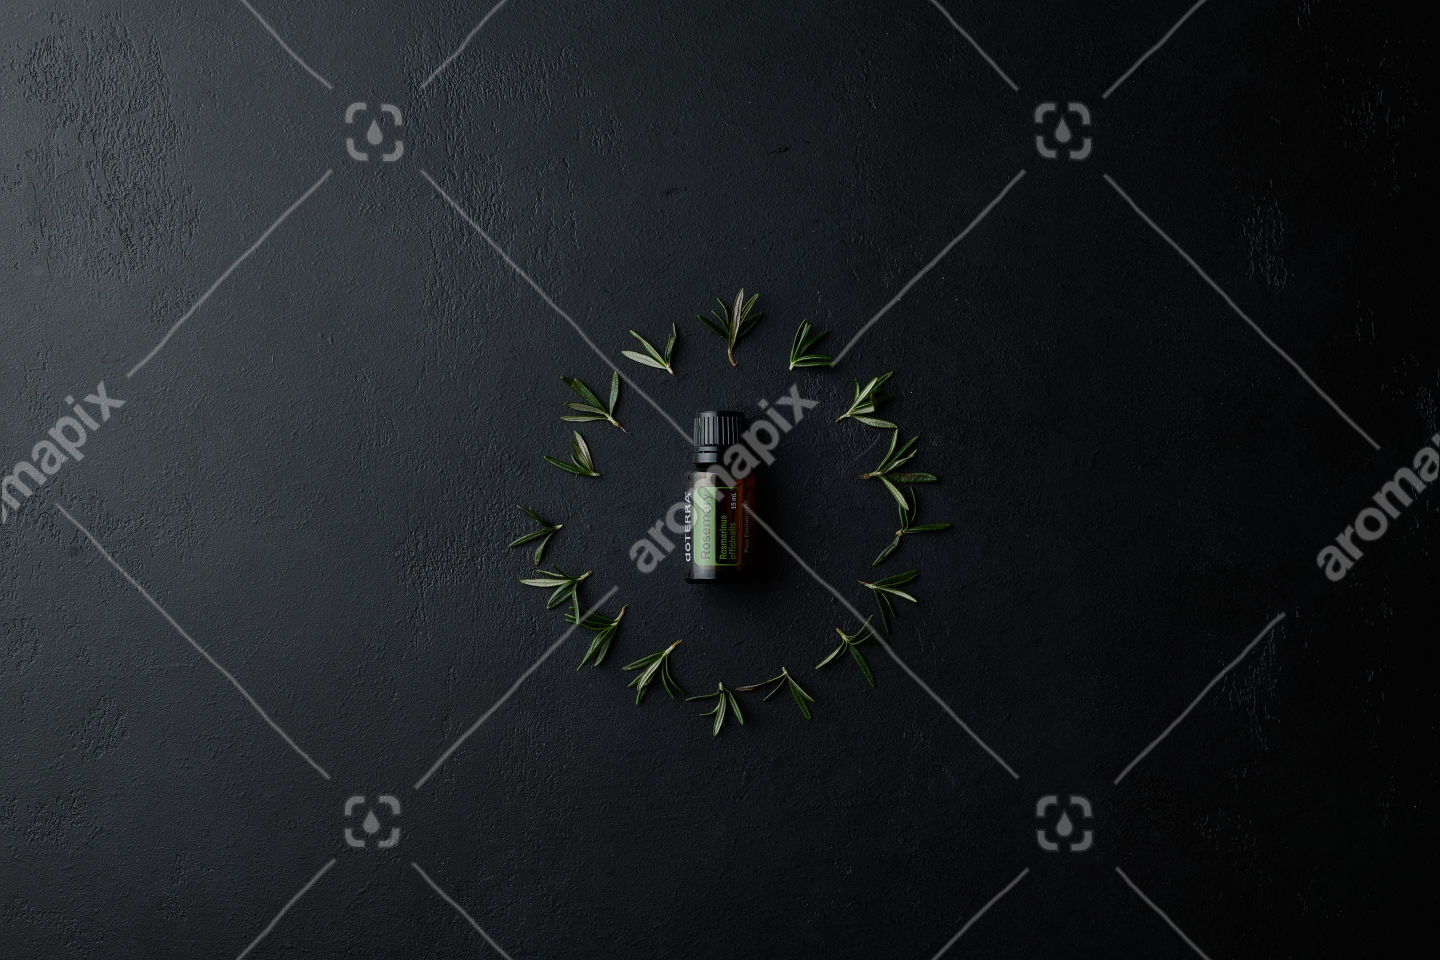 doTERRA Rosemary with rosemary leaves in a circle